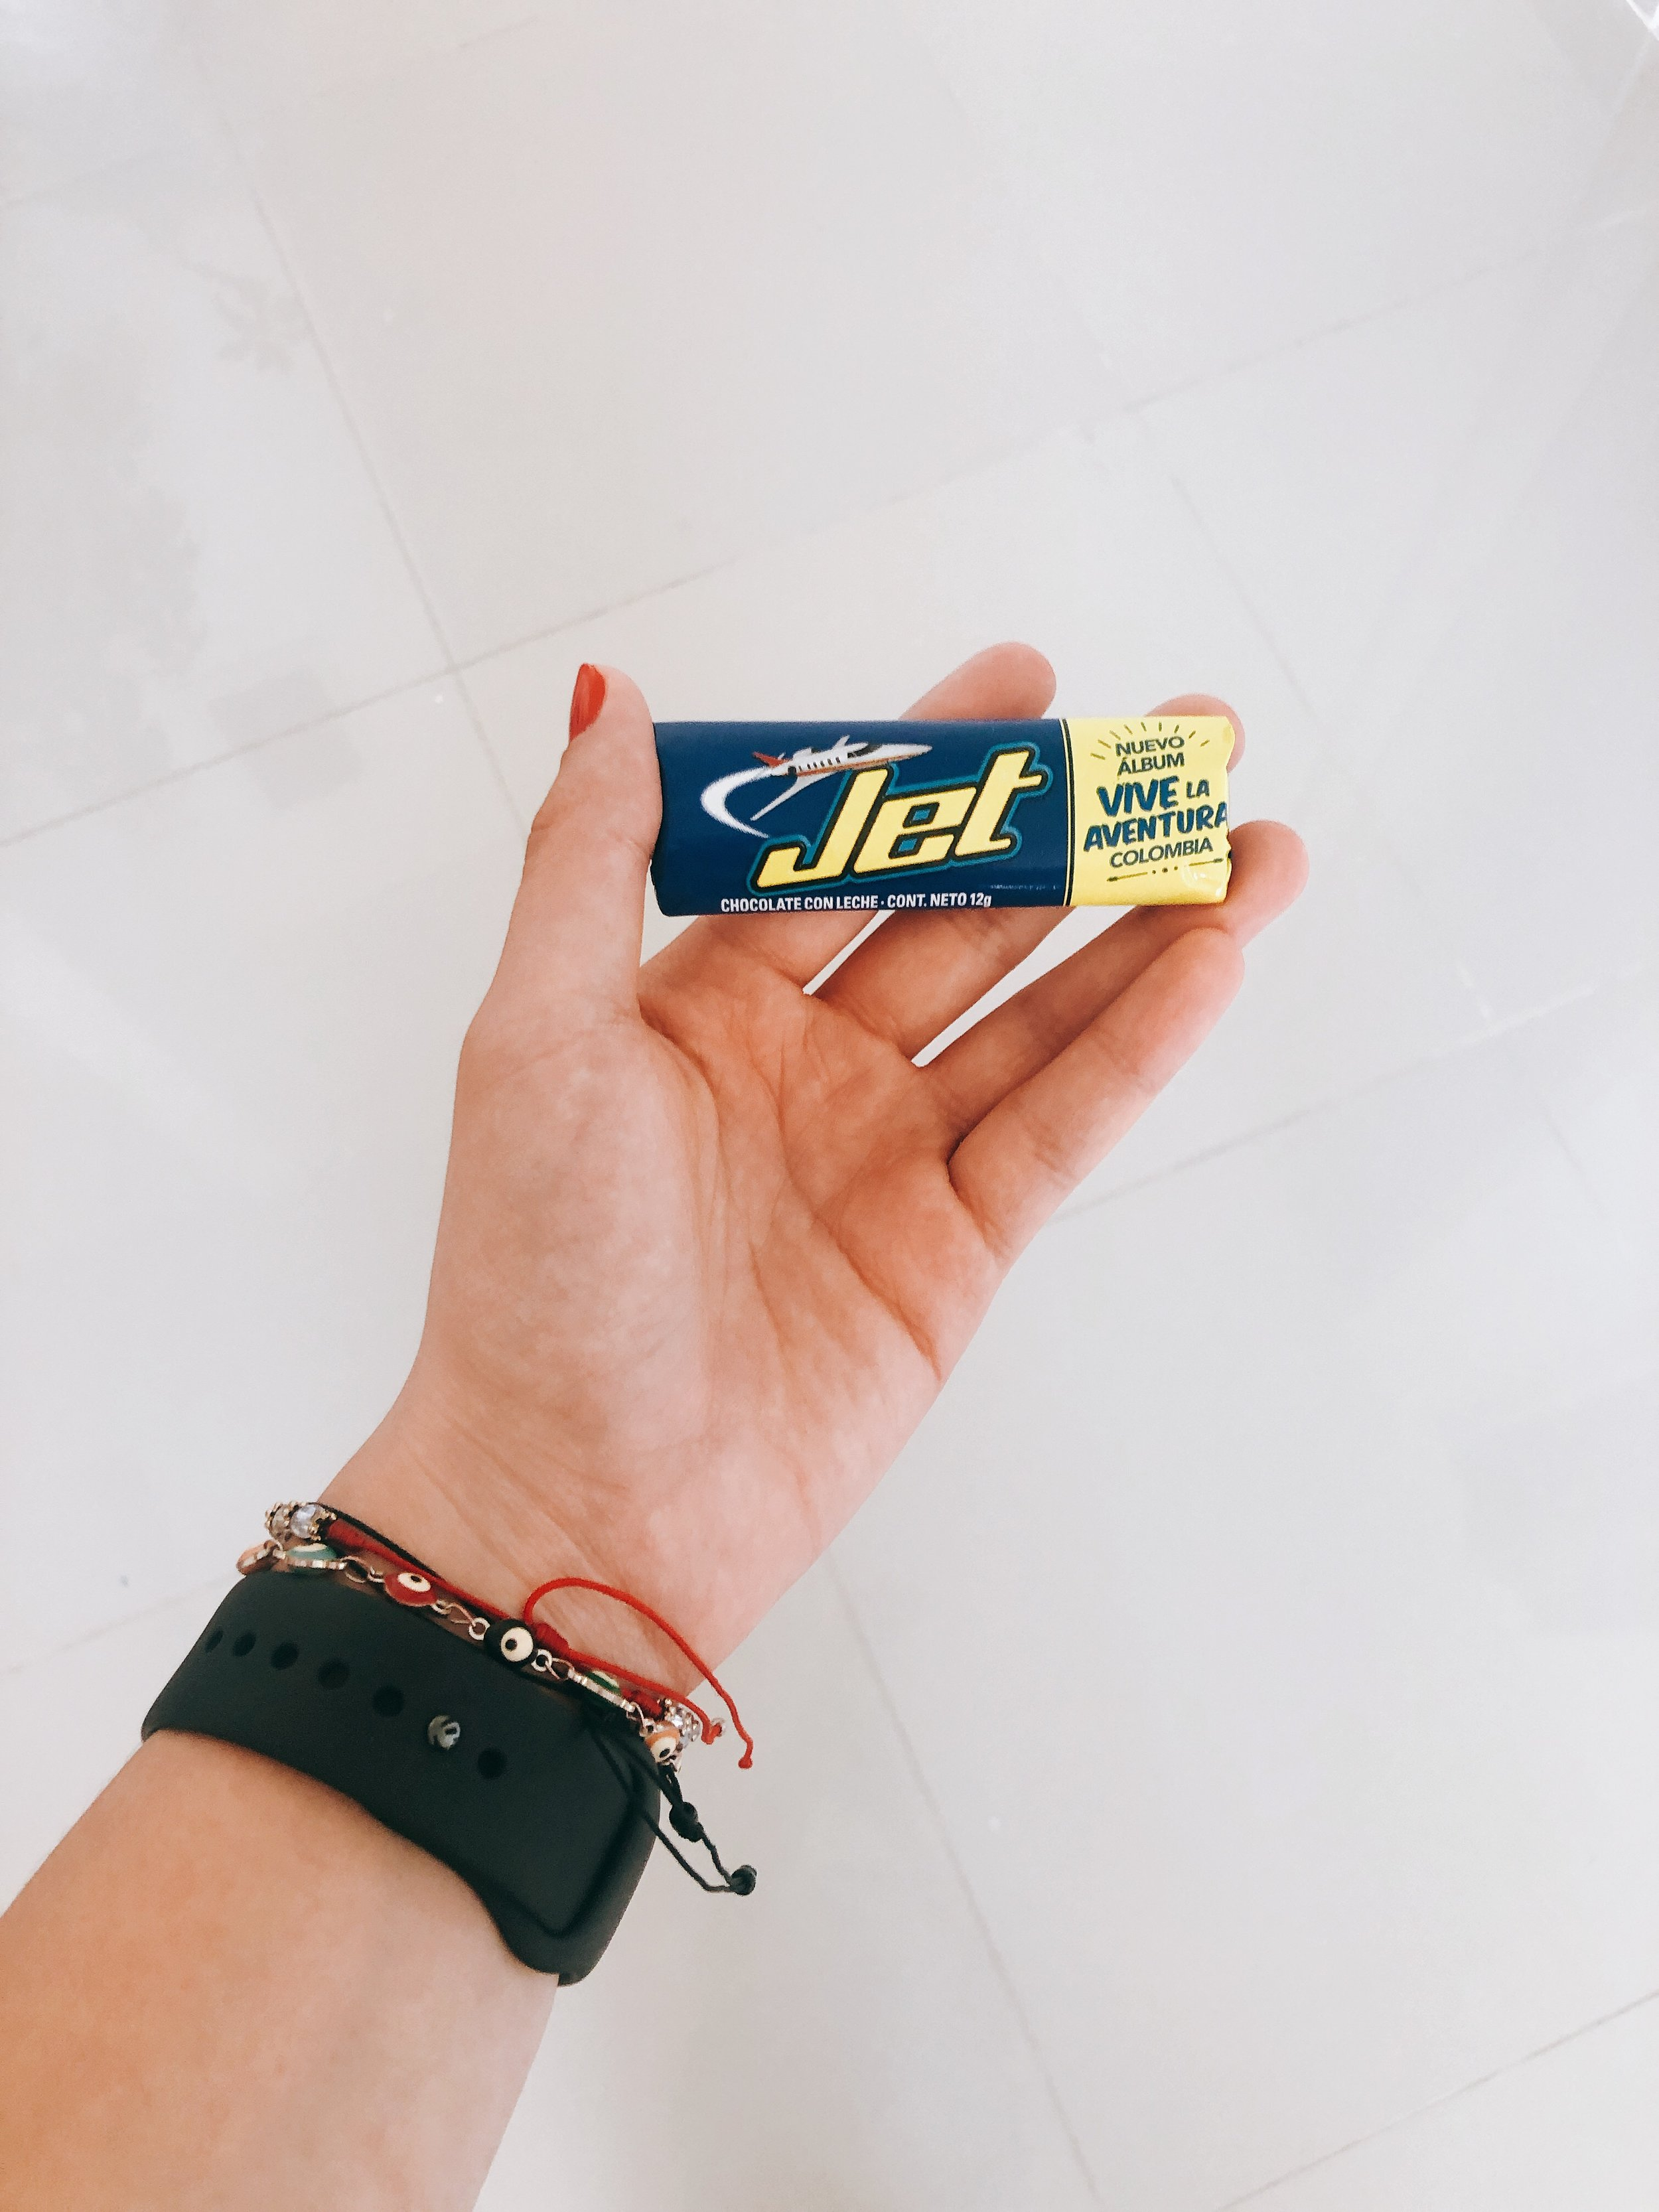 Jet Chocolate - Colombia Trip